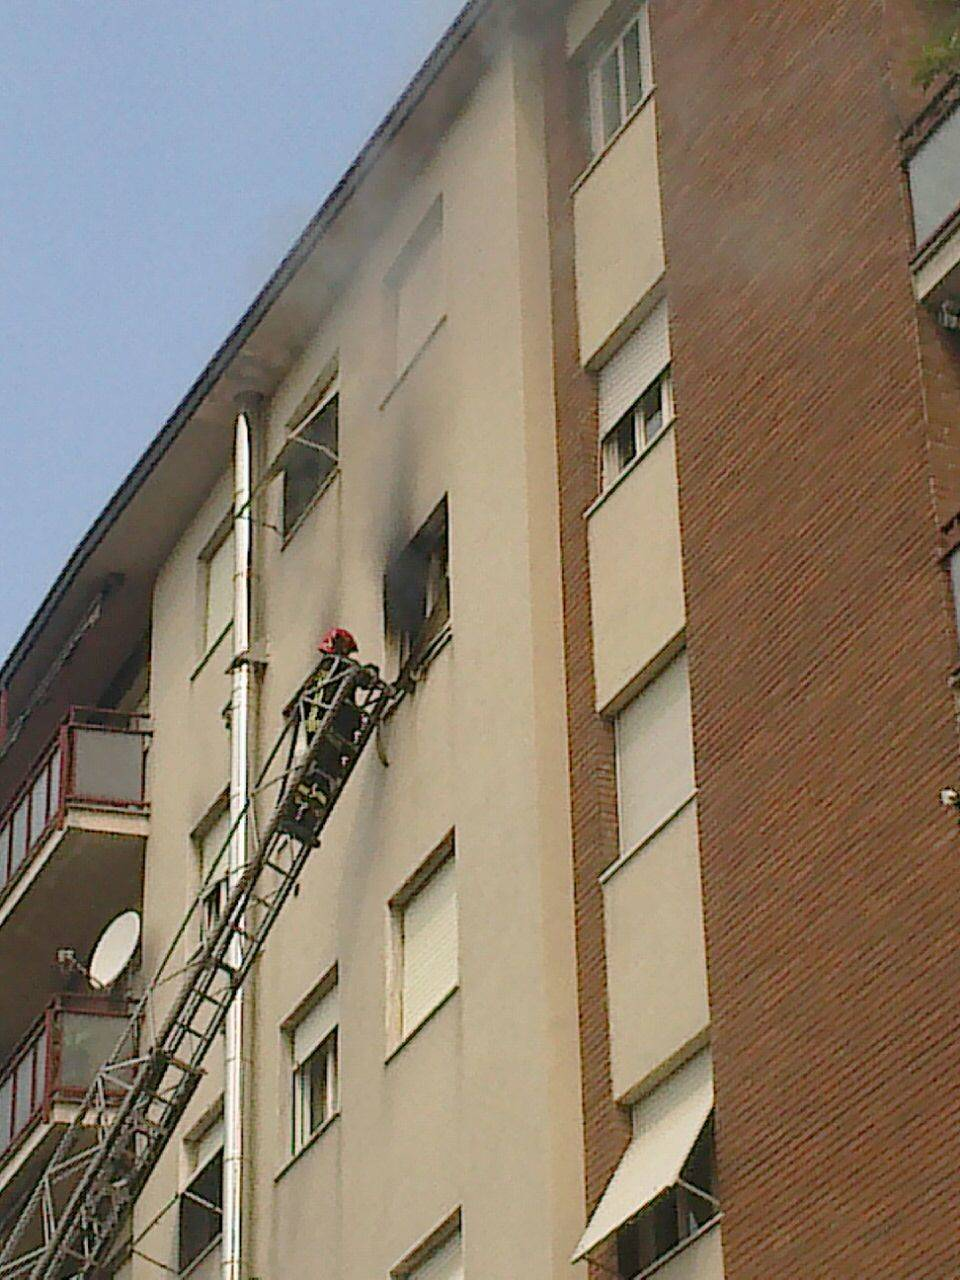 Incendio in via Ferraris a Gallarate